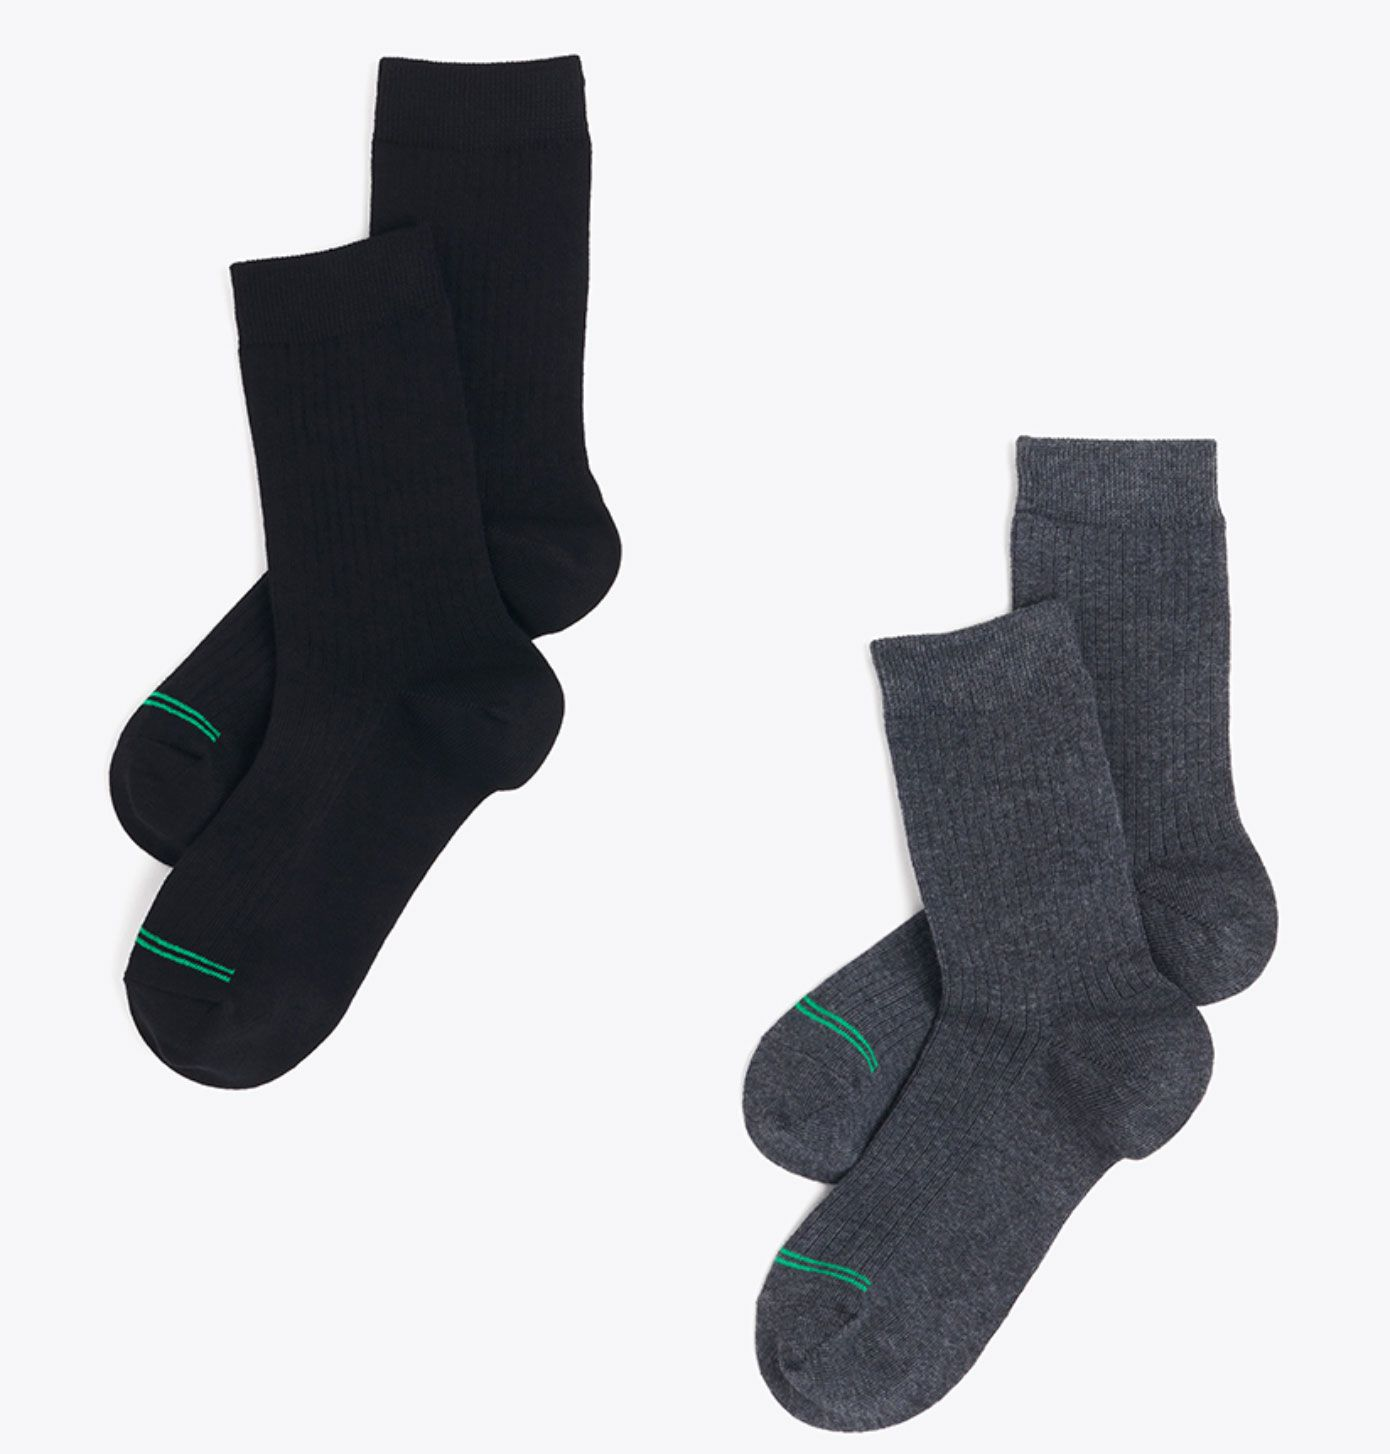 Best Value Pack: Pact Sustainable Socks